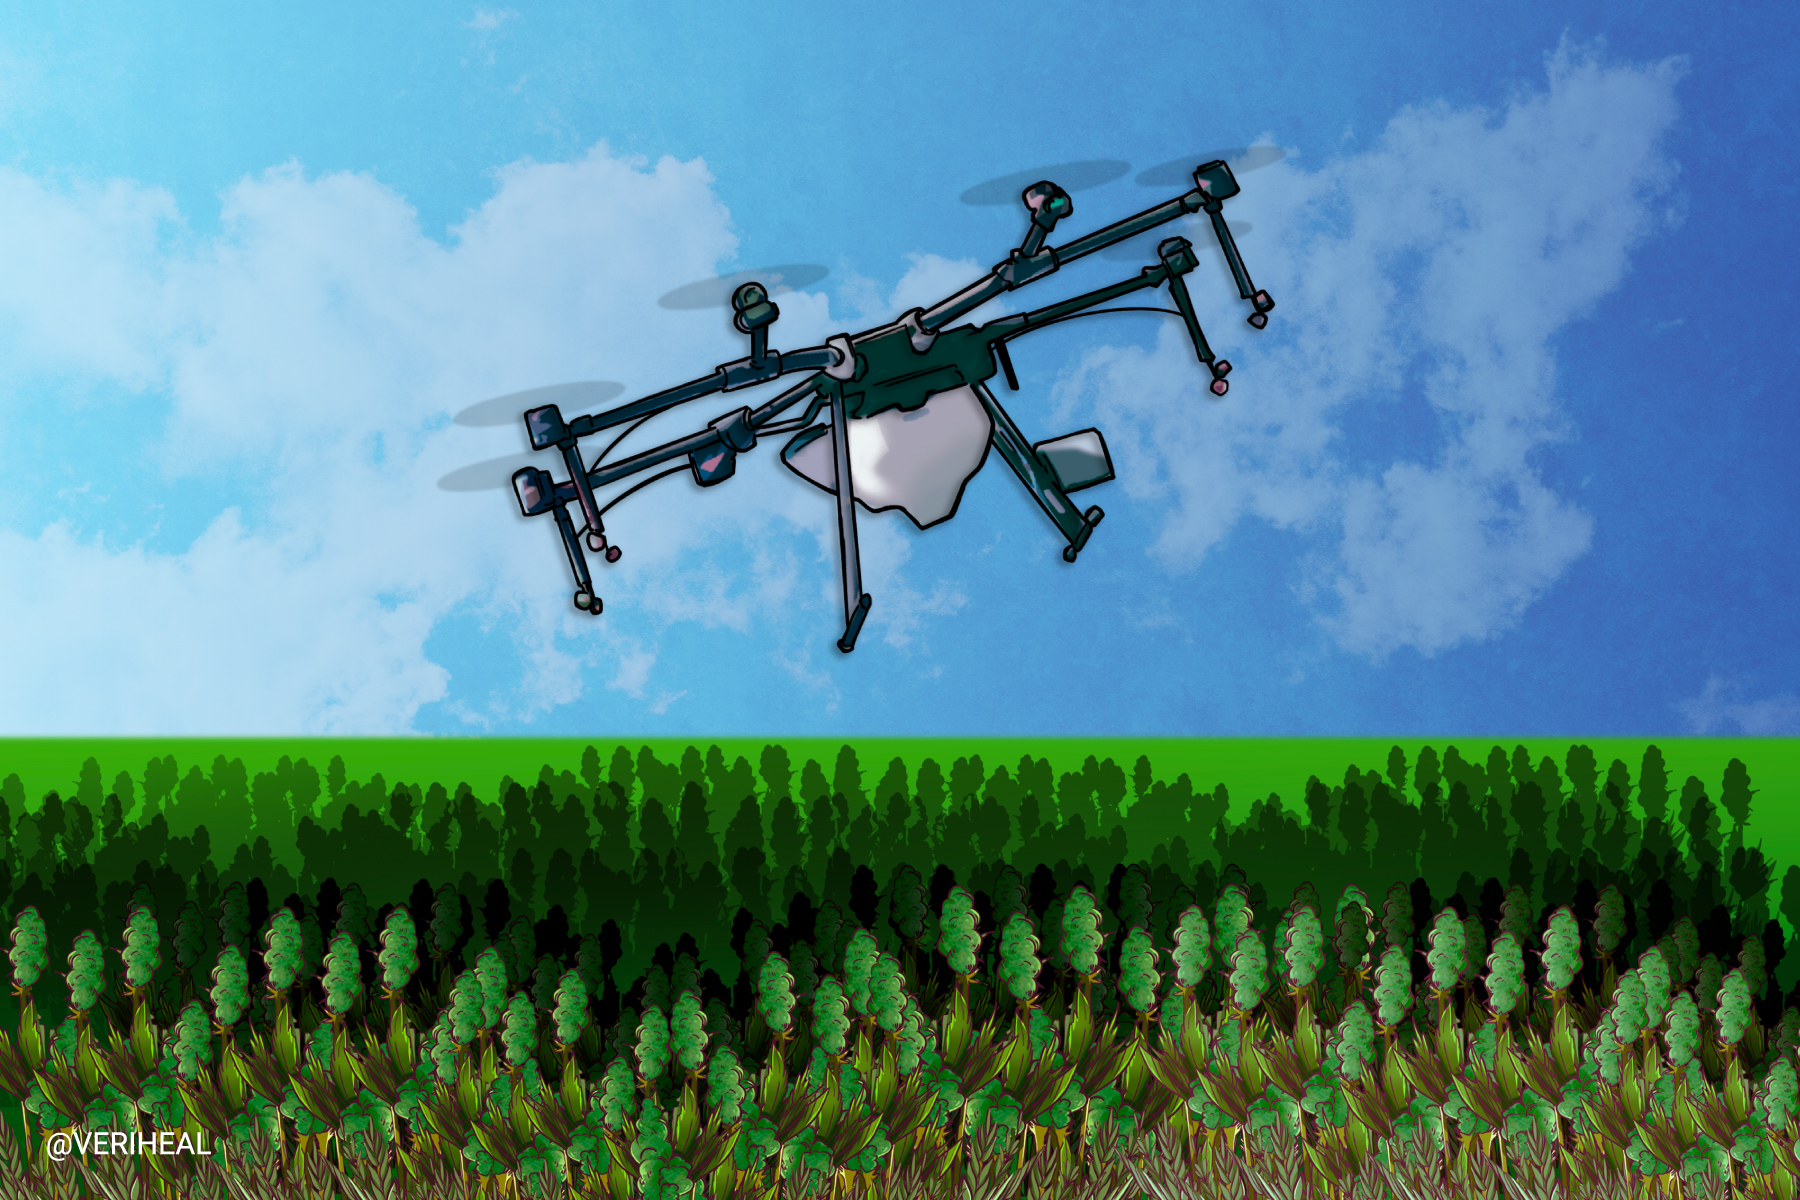 Drones Might Be Able to Help Cannabis Growers Produce Higher Yields